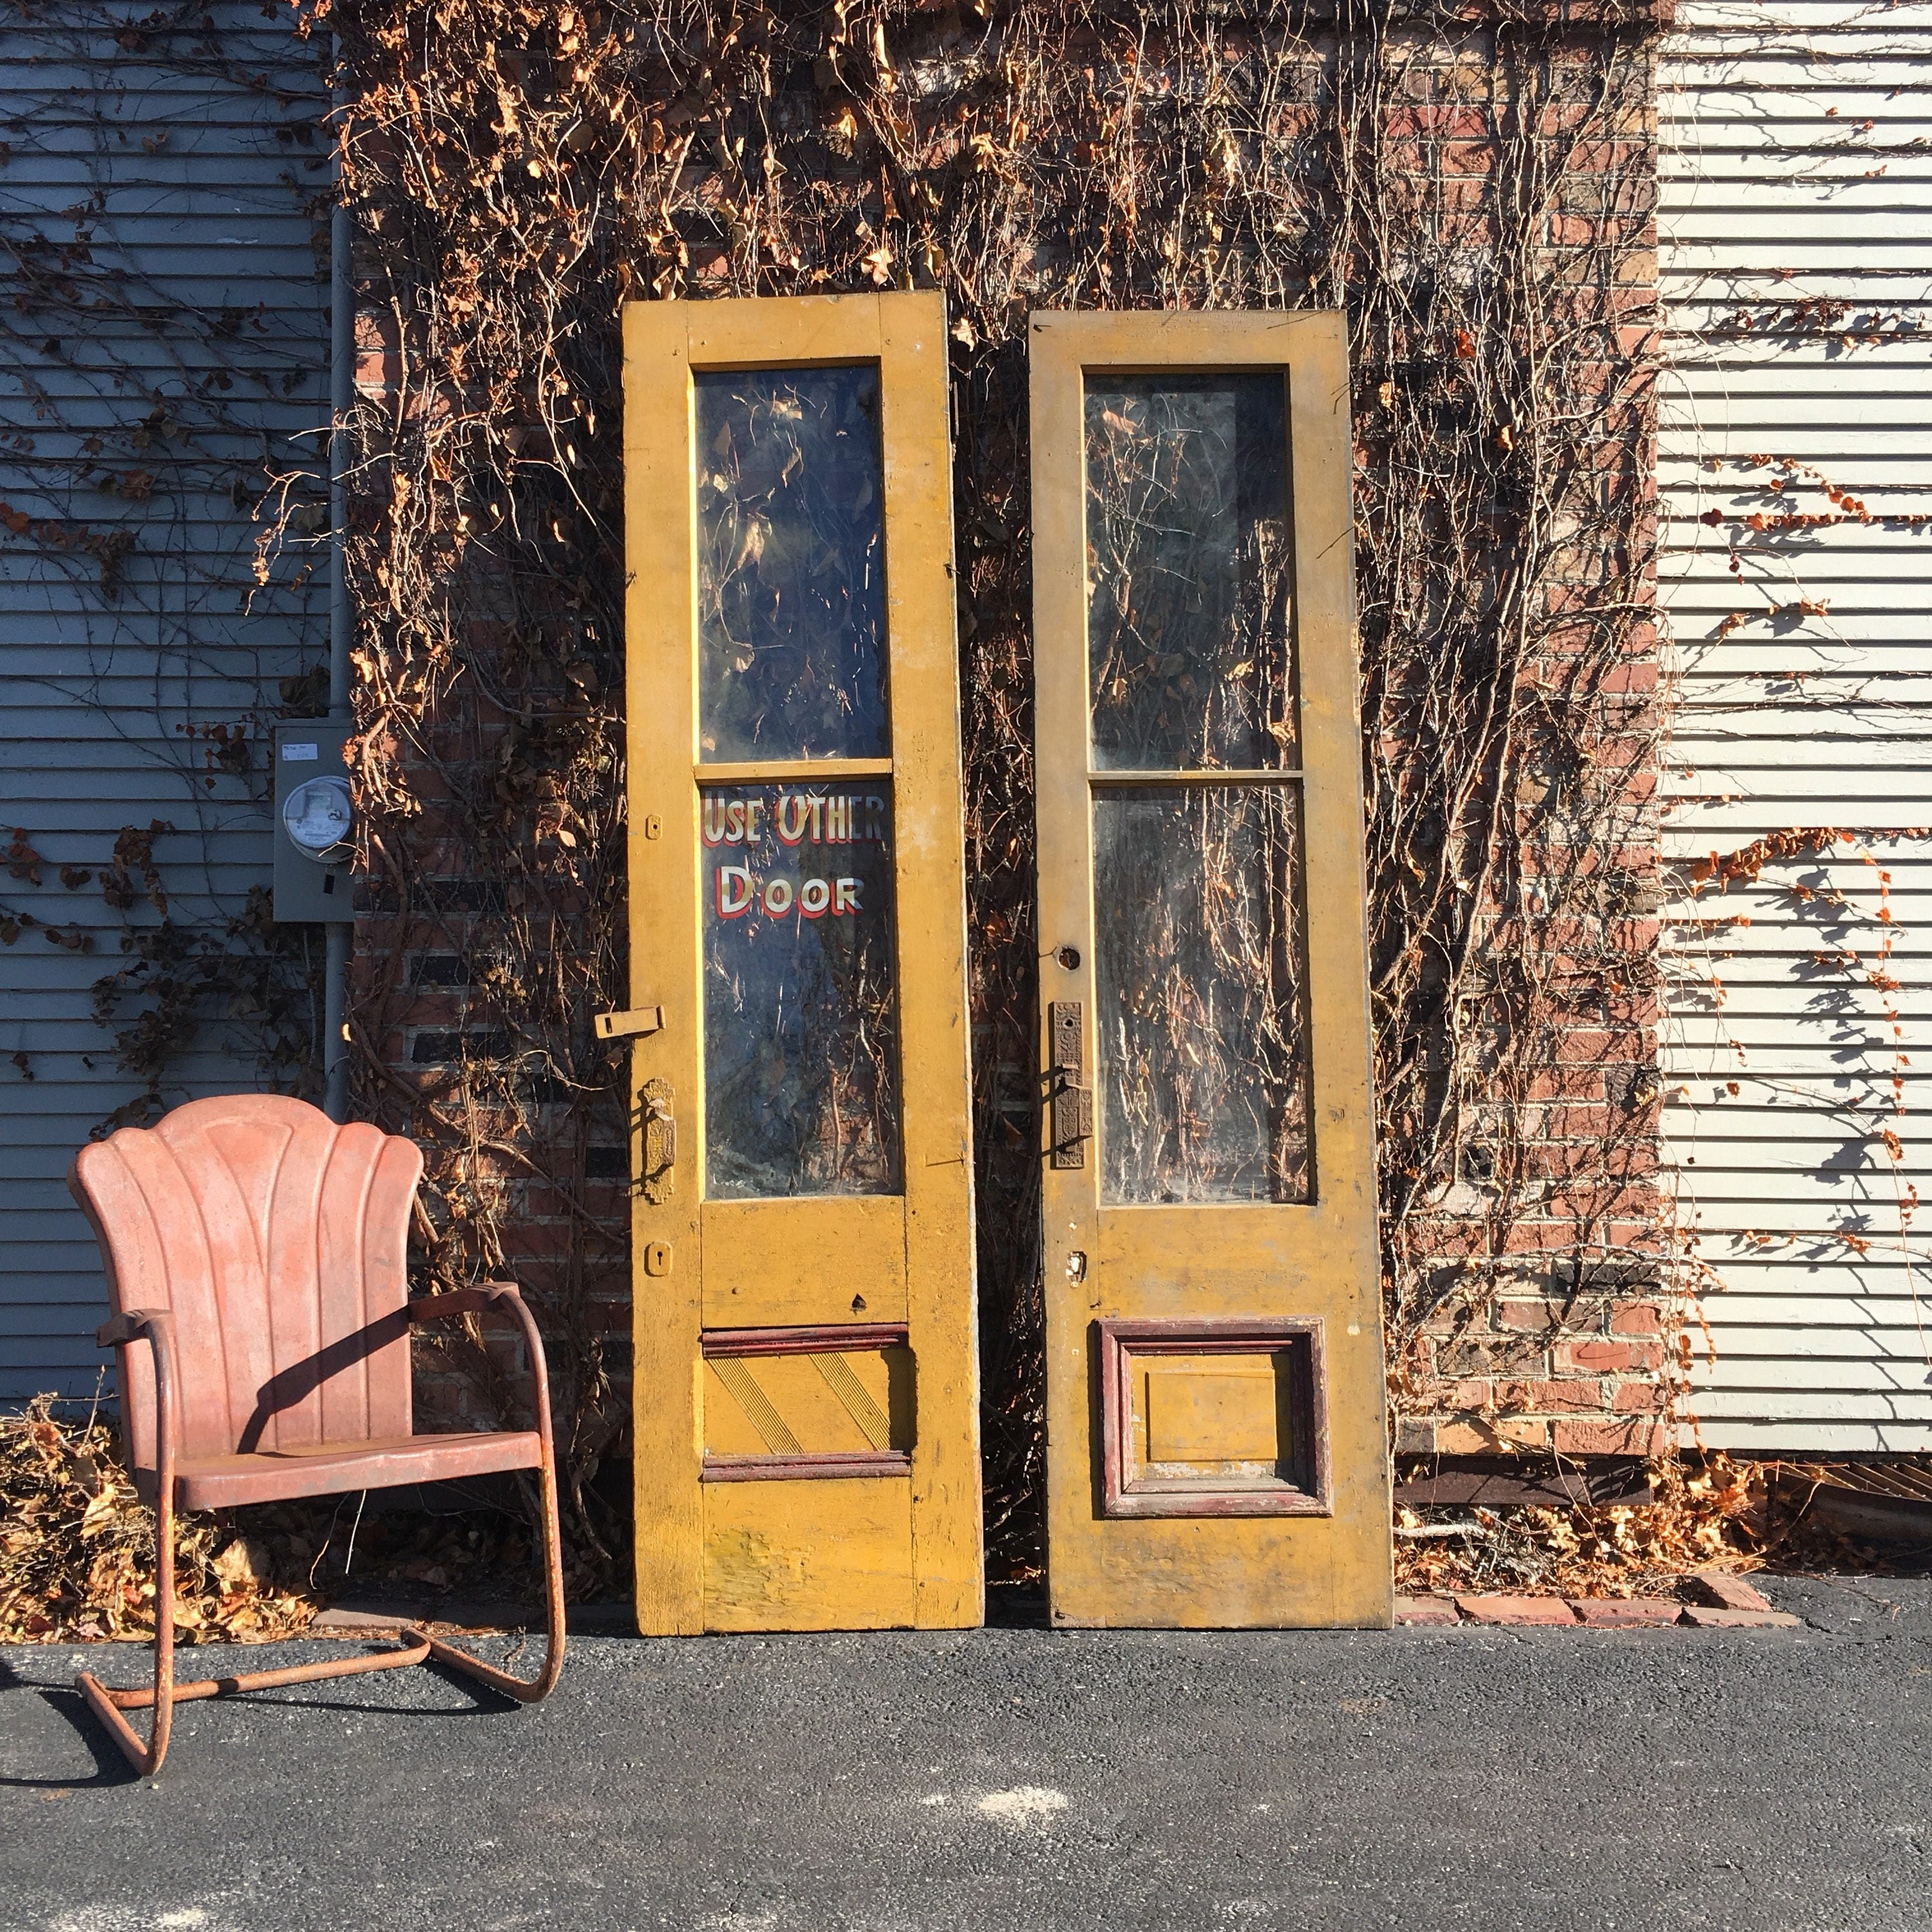 Antique Yellow Doors with Ornate Hardware Hand Painted Use Other Door Sign Unique Pair of Doors Antique Barn Door Architectural Salvage & Antique Yellow Doors with Ornate Hardware Hand Painted Use Other ...